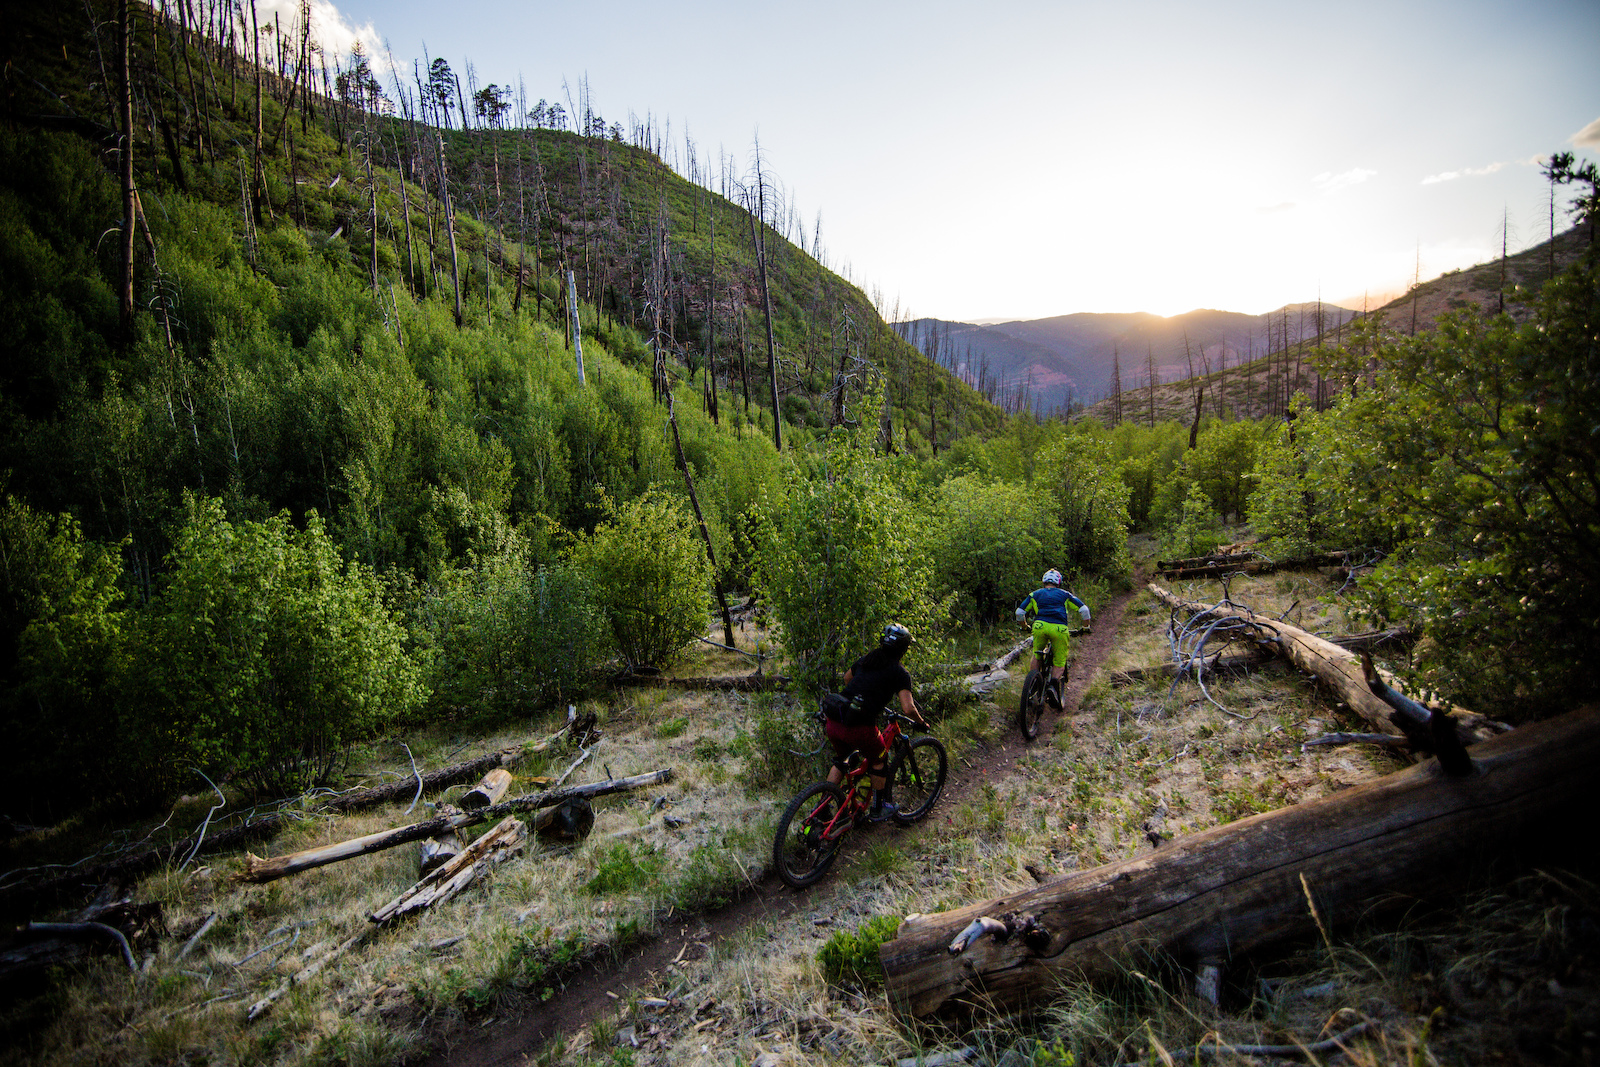 If you re in Durango and like going down hills you need to ride Haflin. This was the last bit of trail in an old burn zone before it changed to the Sedona-style of riding.